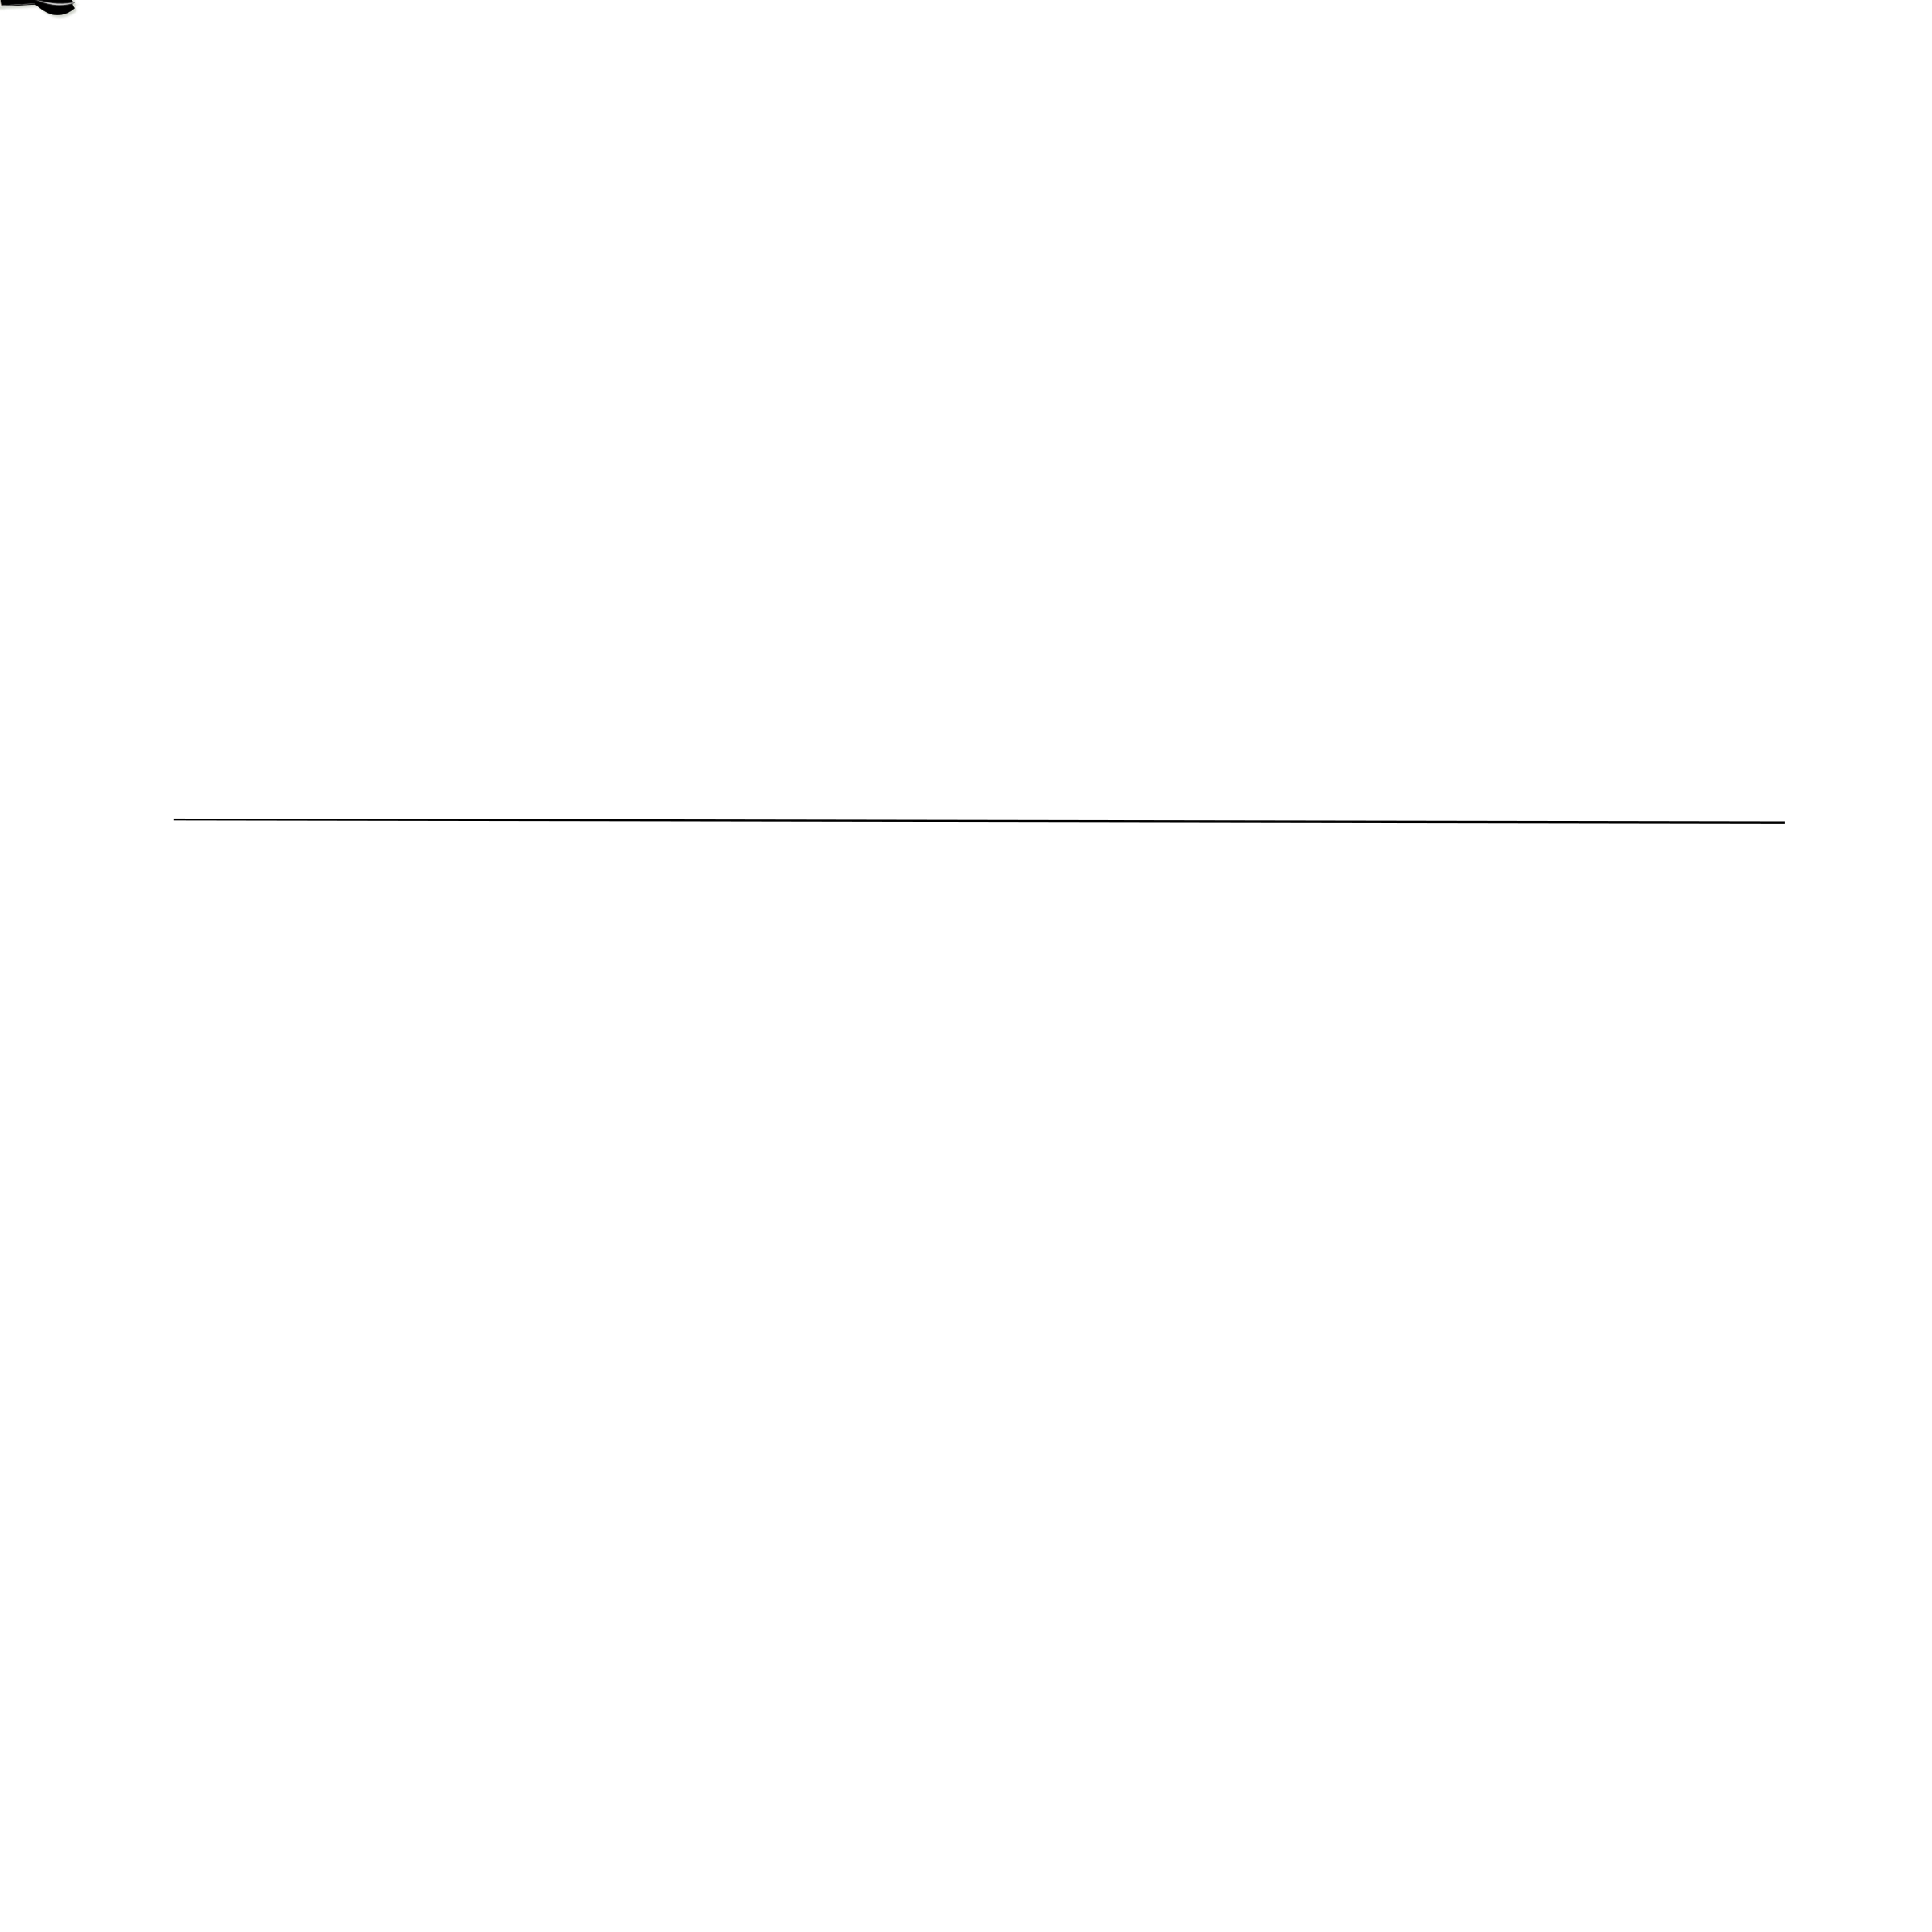 Straight Black Line Png, Transparent PNG, png collections ...